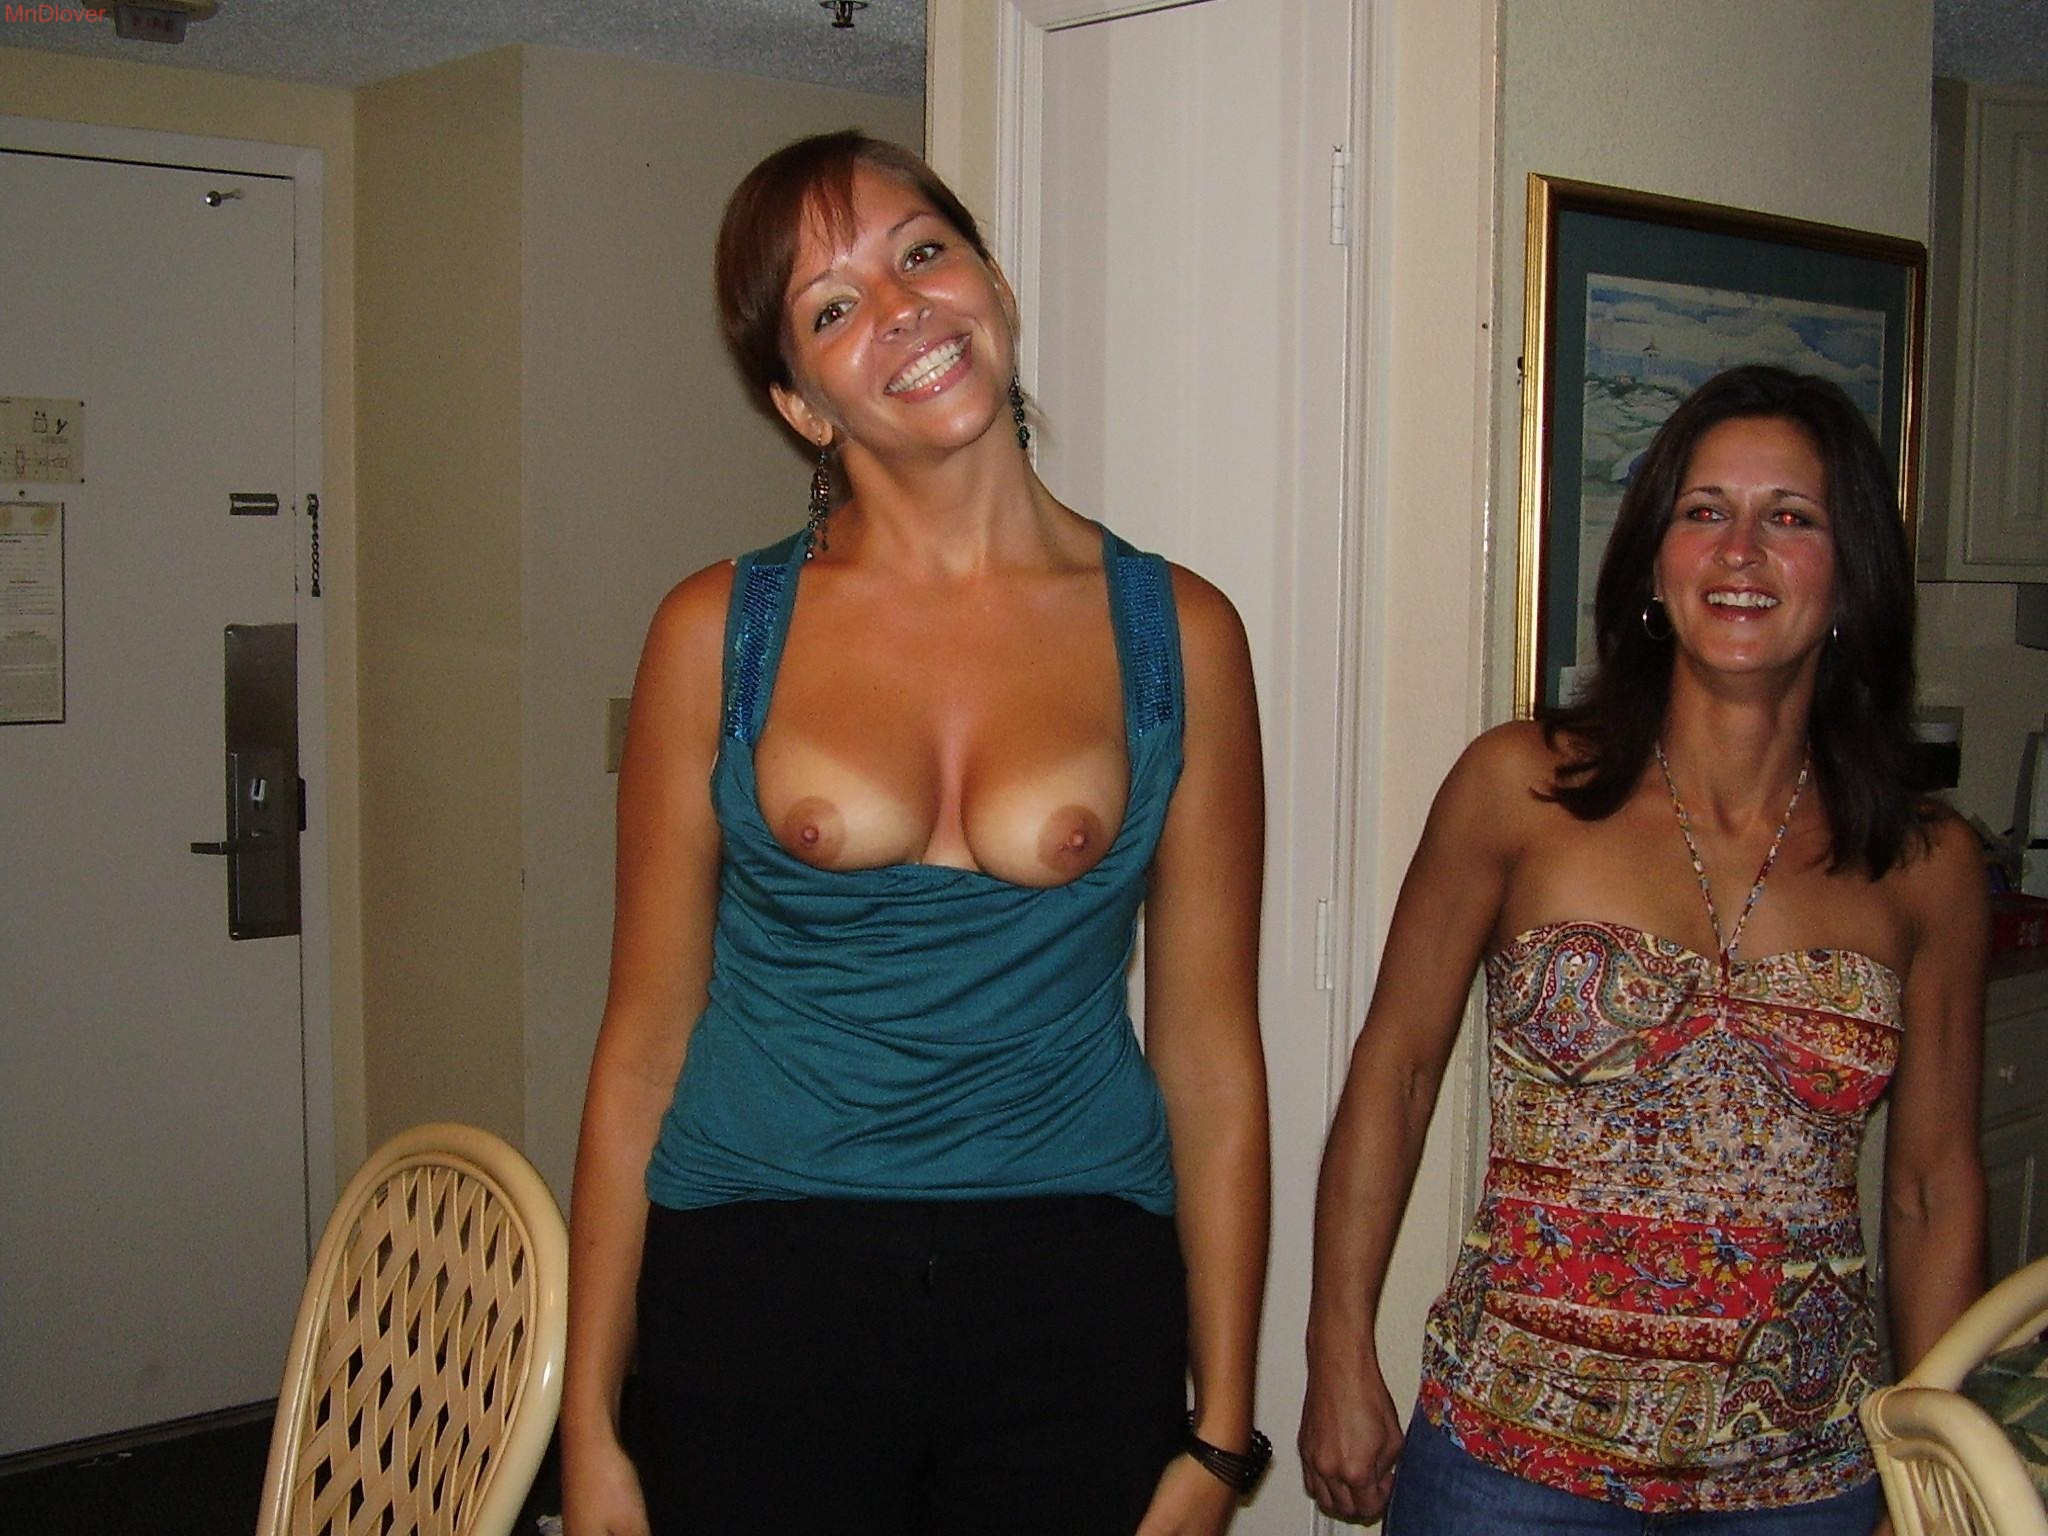 Amateur Mother And Daughter Porn showing xxx images for mom daughters pussy pee xxx | www